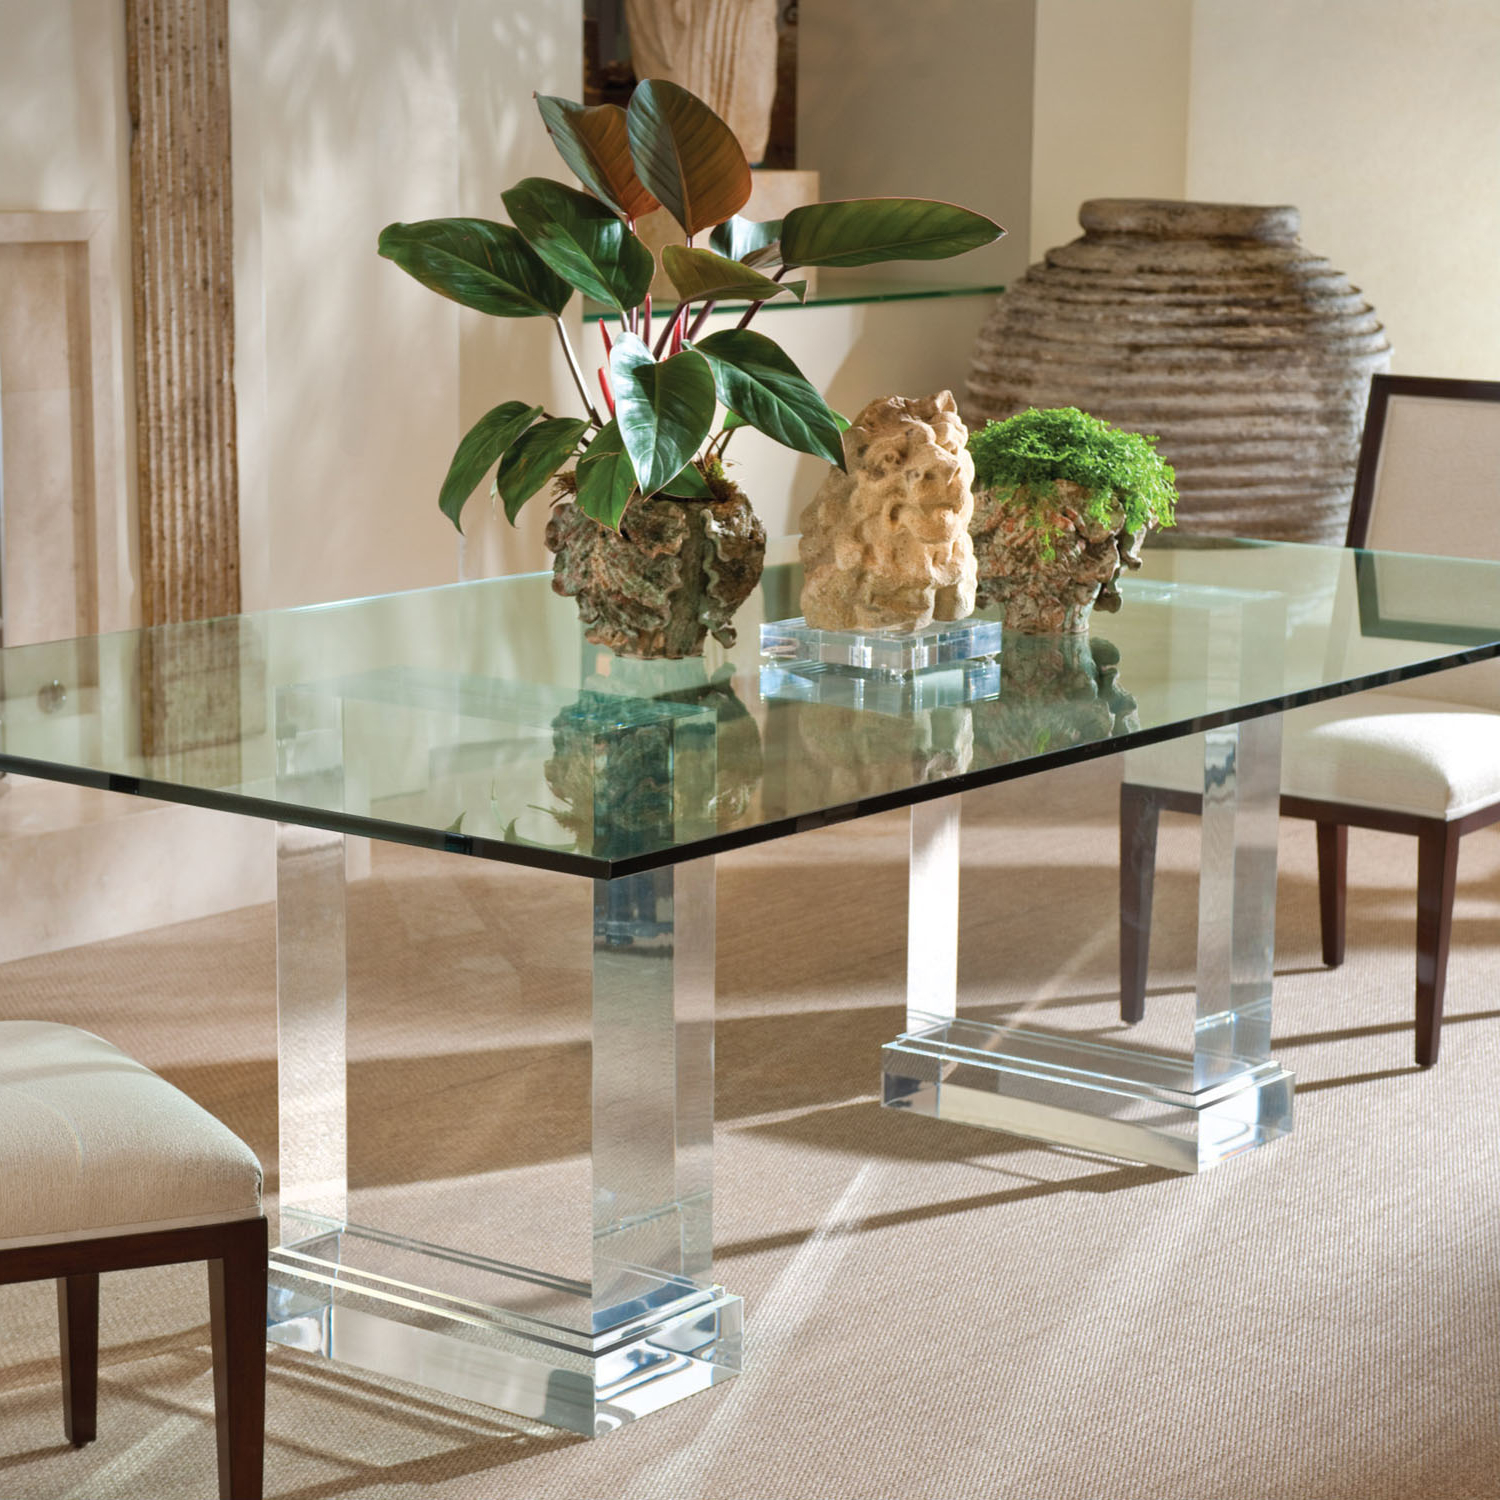 Finest Rectangle Glass Top For Dining Table On With Hd With Regard To Widely Used Rectangular Glass Top Dining Tables (View 11 of 25)